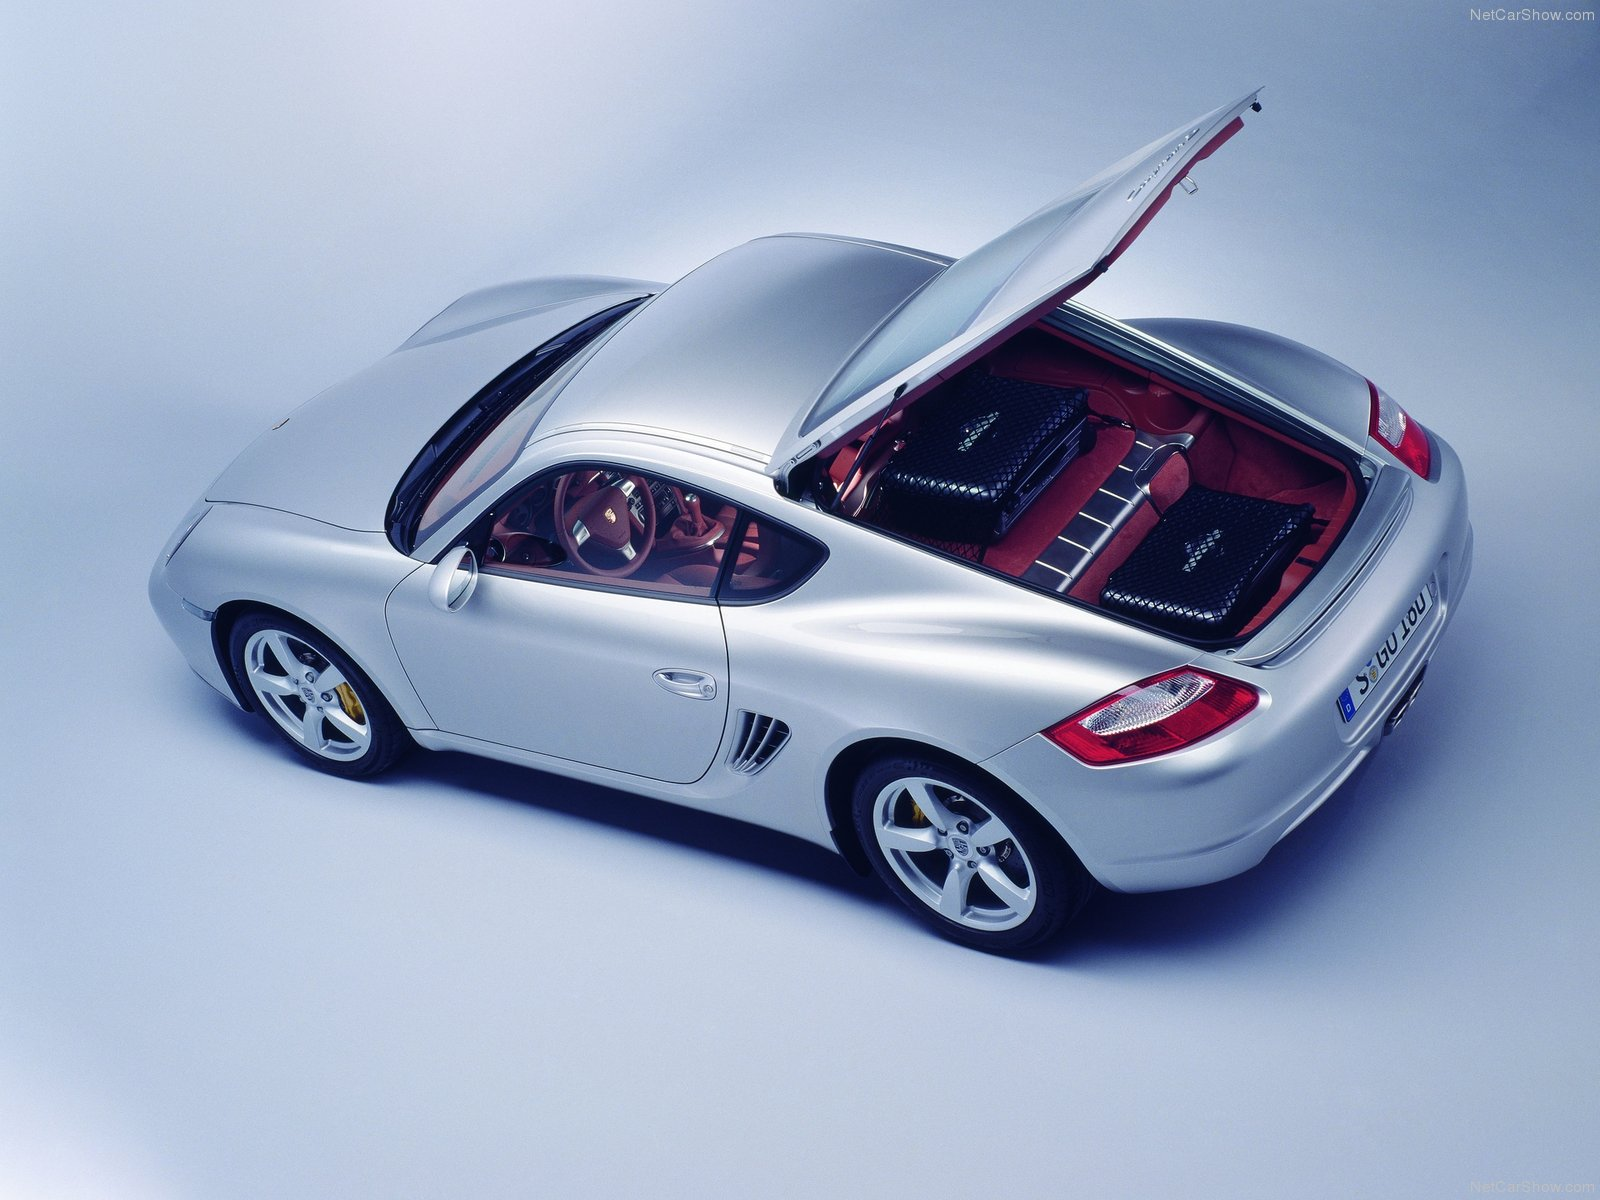 3dtuning Of Porsche Cayman S Coupe 2008 3dtuning Com